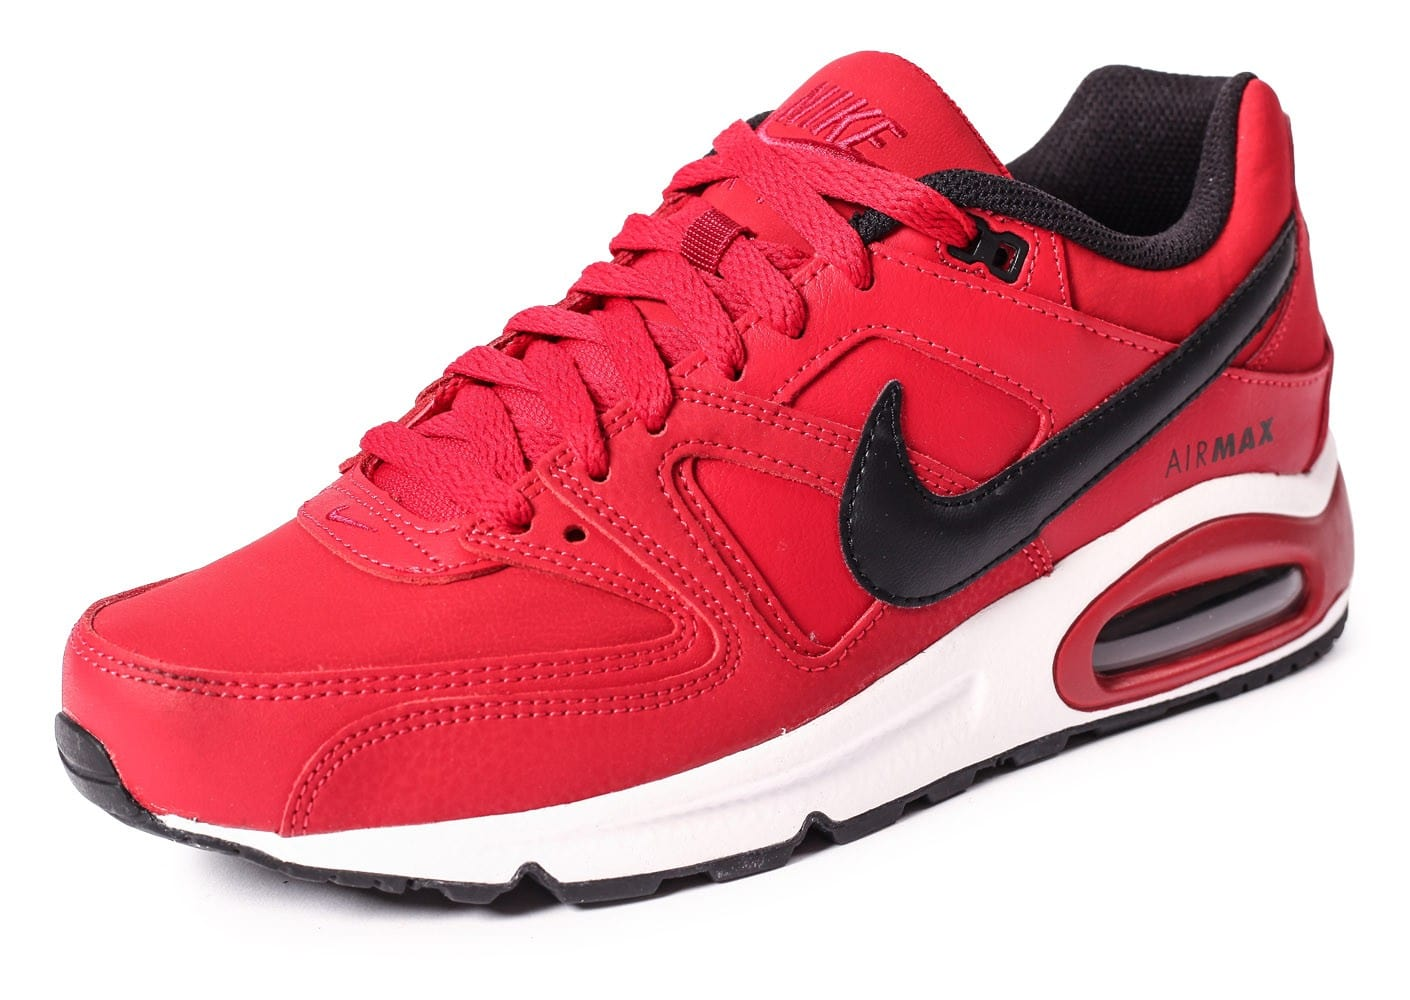 Max Et Chaussures Baskets Air Noire Command Leather Nike Rouge sdthrQC